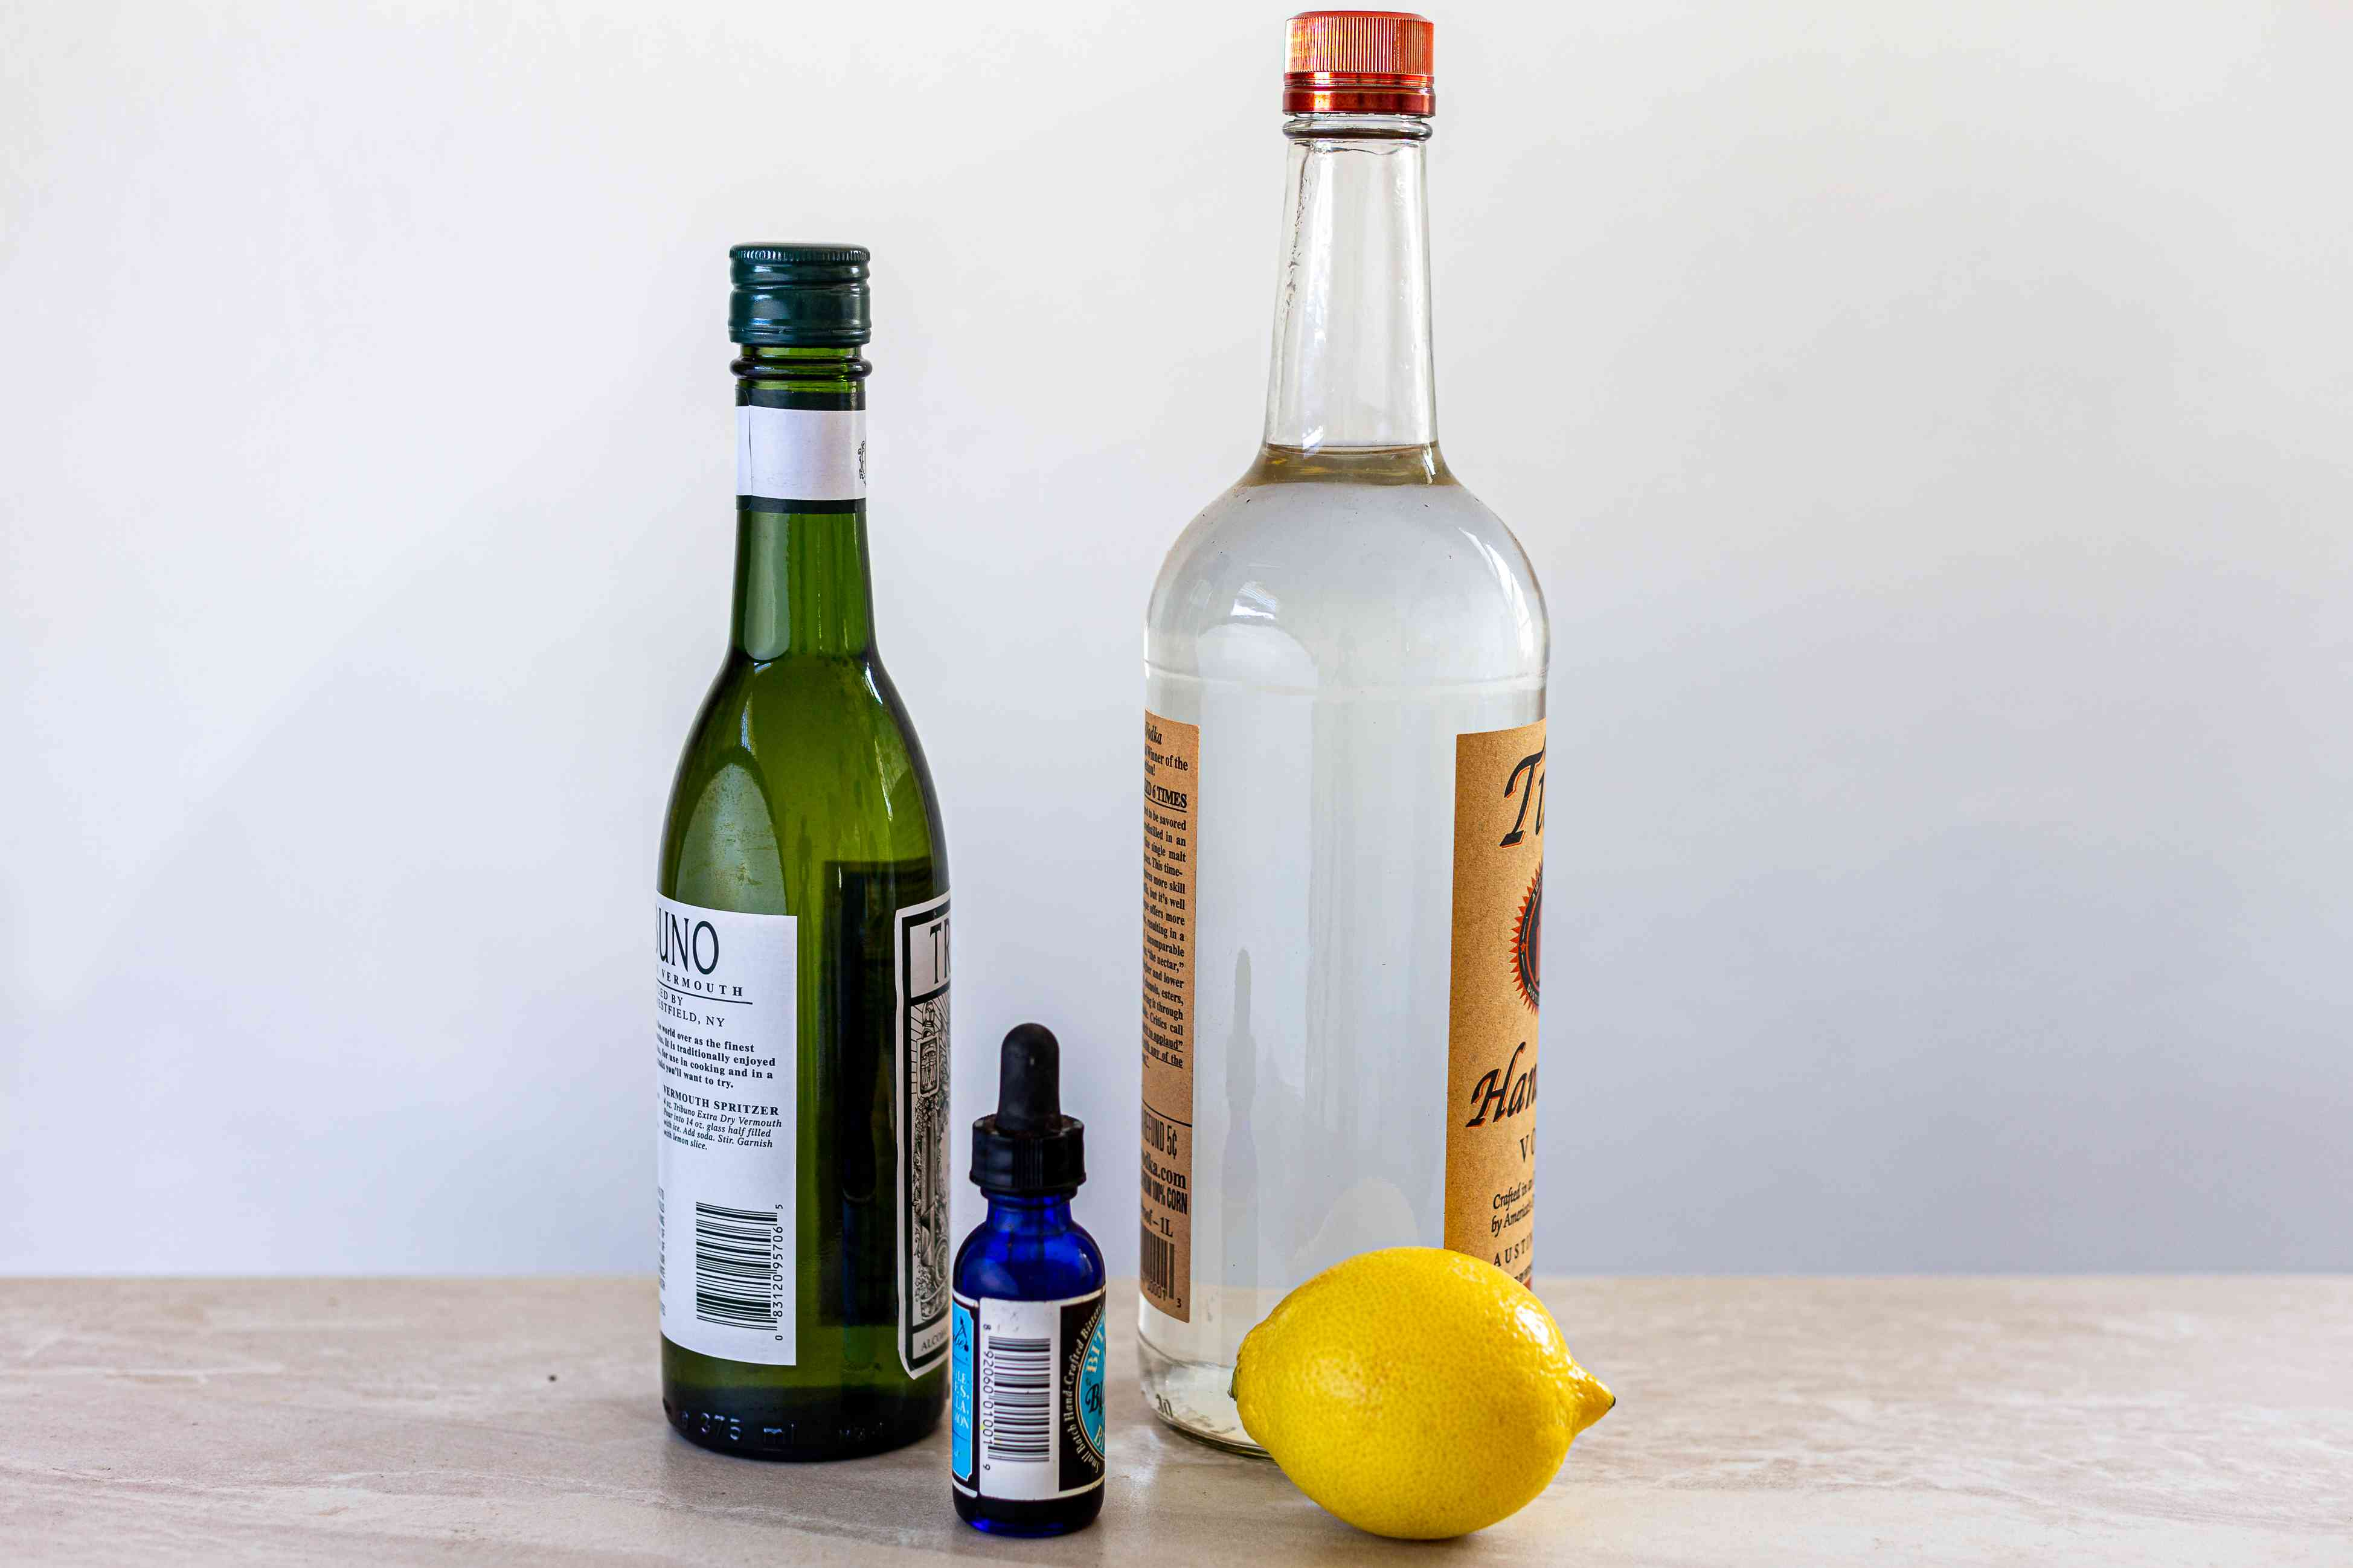 Ingredients for making a vodka martini